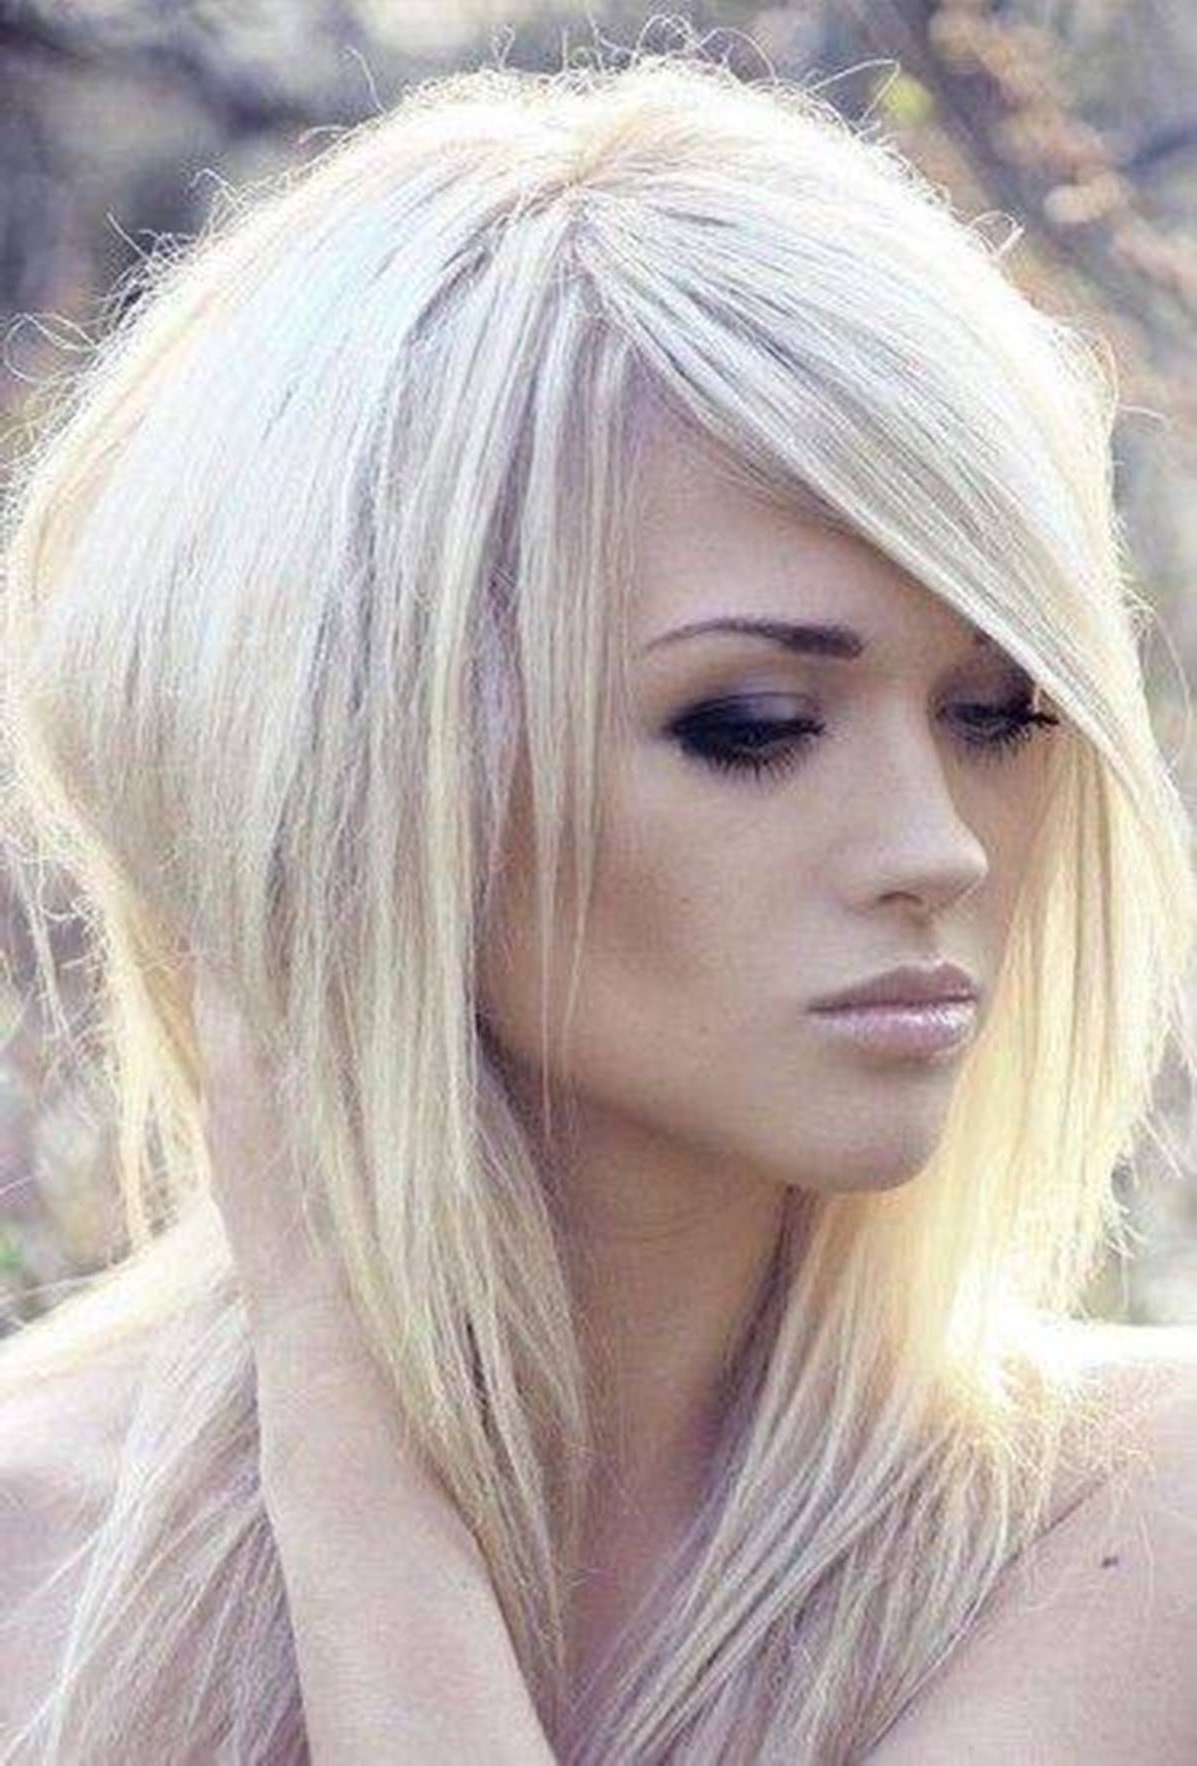 [%Recent Blonde Shaggy Hairstyles With Blonde Long Shag Hairstyles [ Waterbabiesbikini ] #beauty|Blonde Long Shag Hairstyles [ Waterbabiesbikini ] #beauty With Regard To Most Popular Blonde Shaggy Hairstyles%] (View 1 of 15)